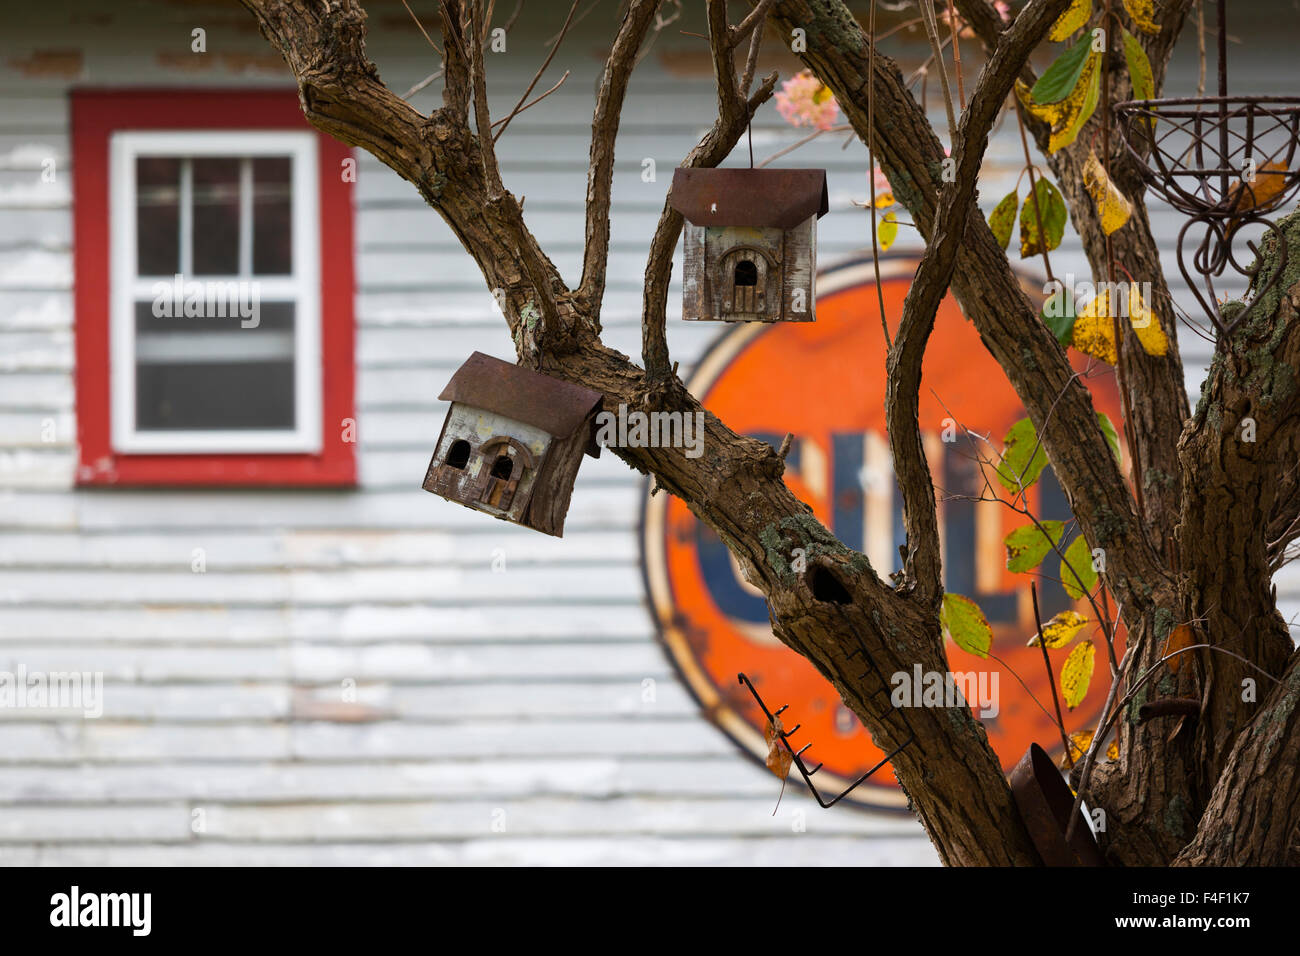 North Carolina, Linville, antique Gulf sign with birdhouses - Stock Image